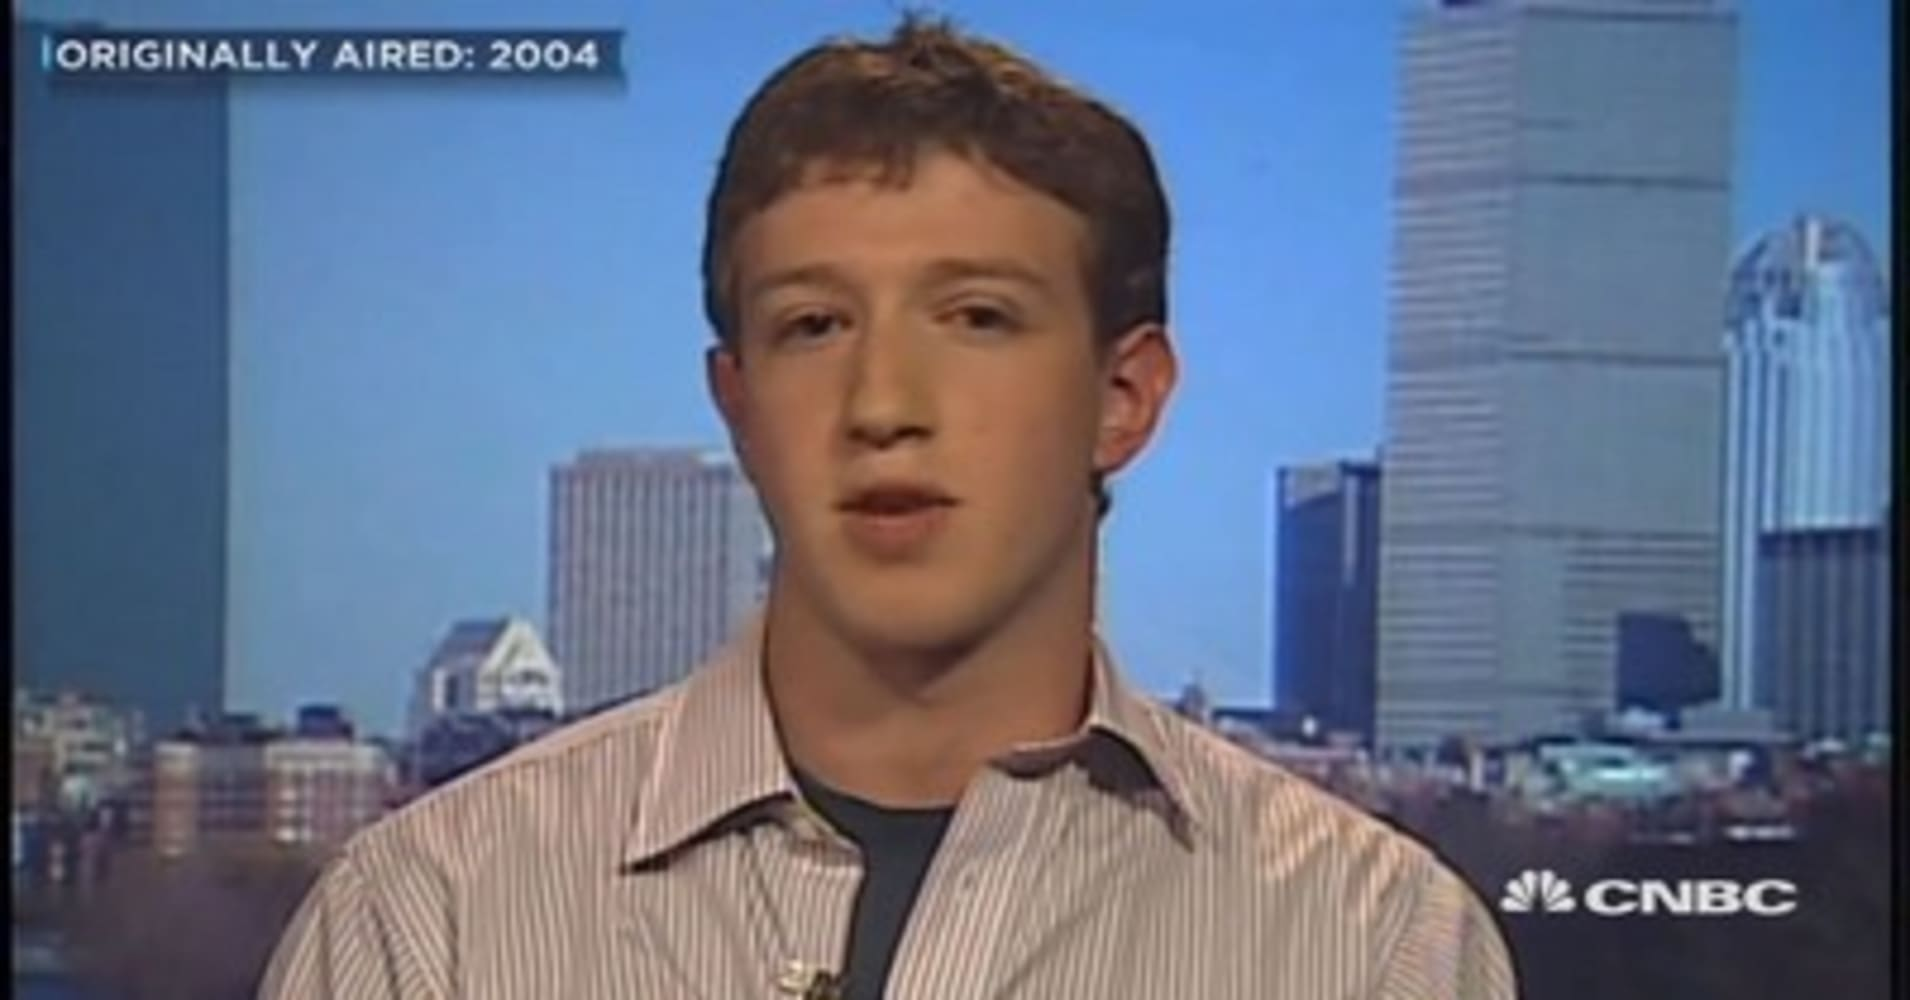 Here's Mark Zuckerberg's first-ever TV interview from 13